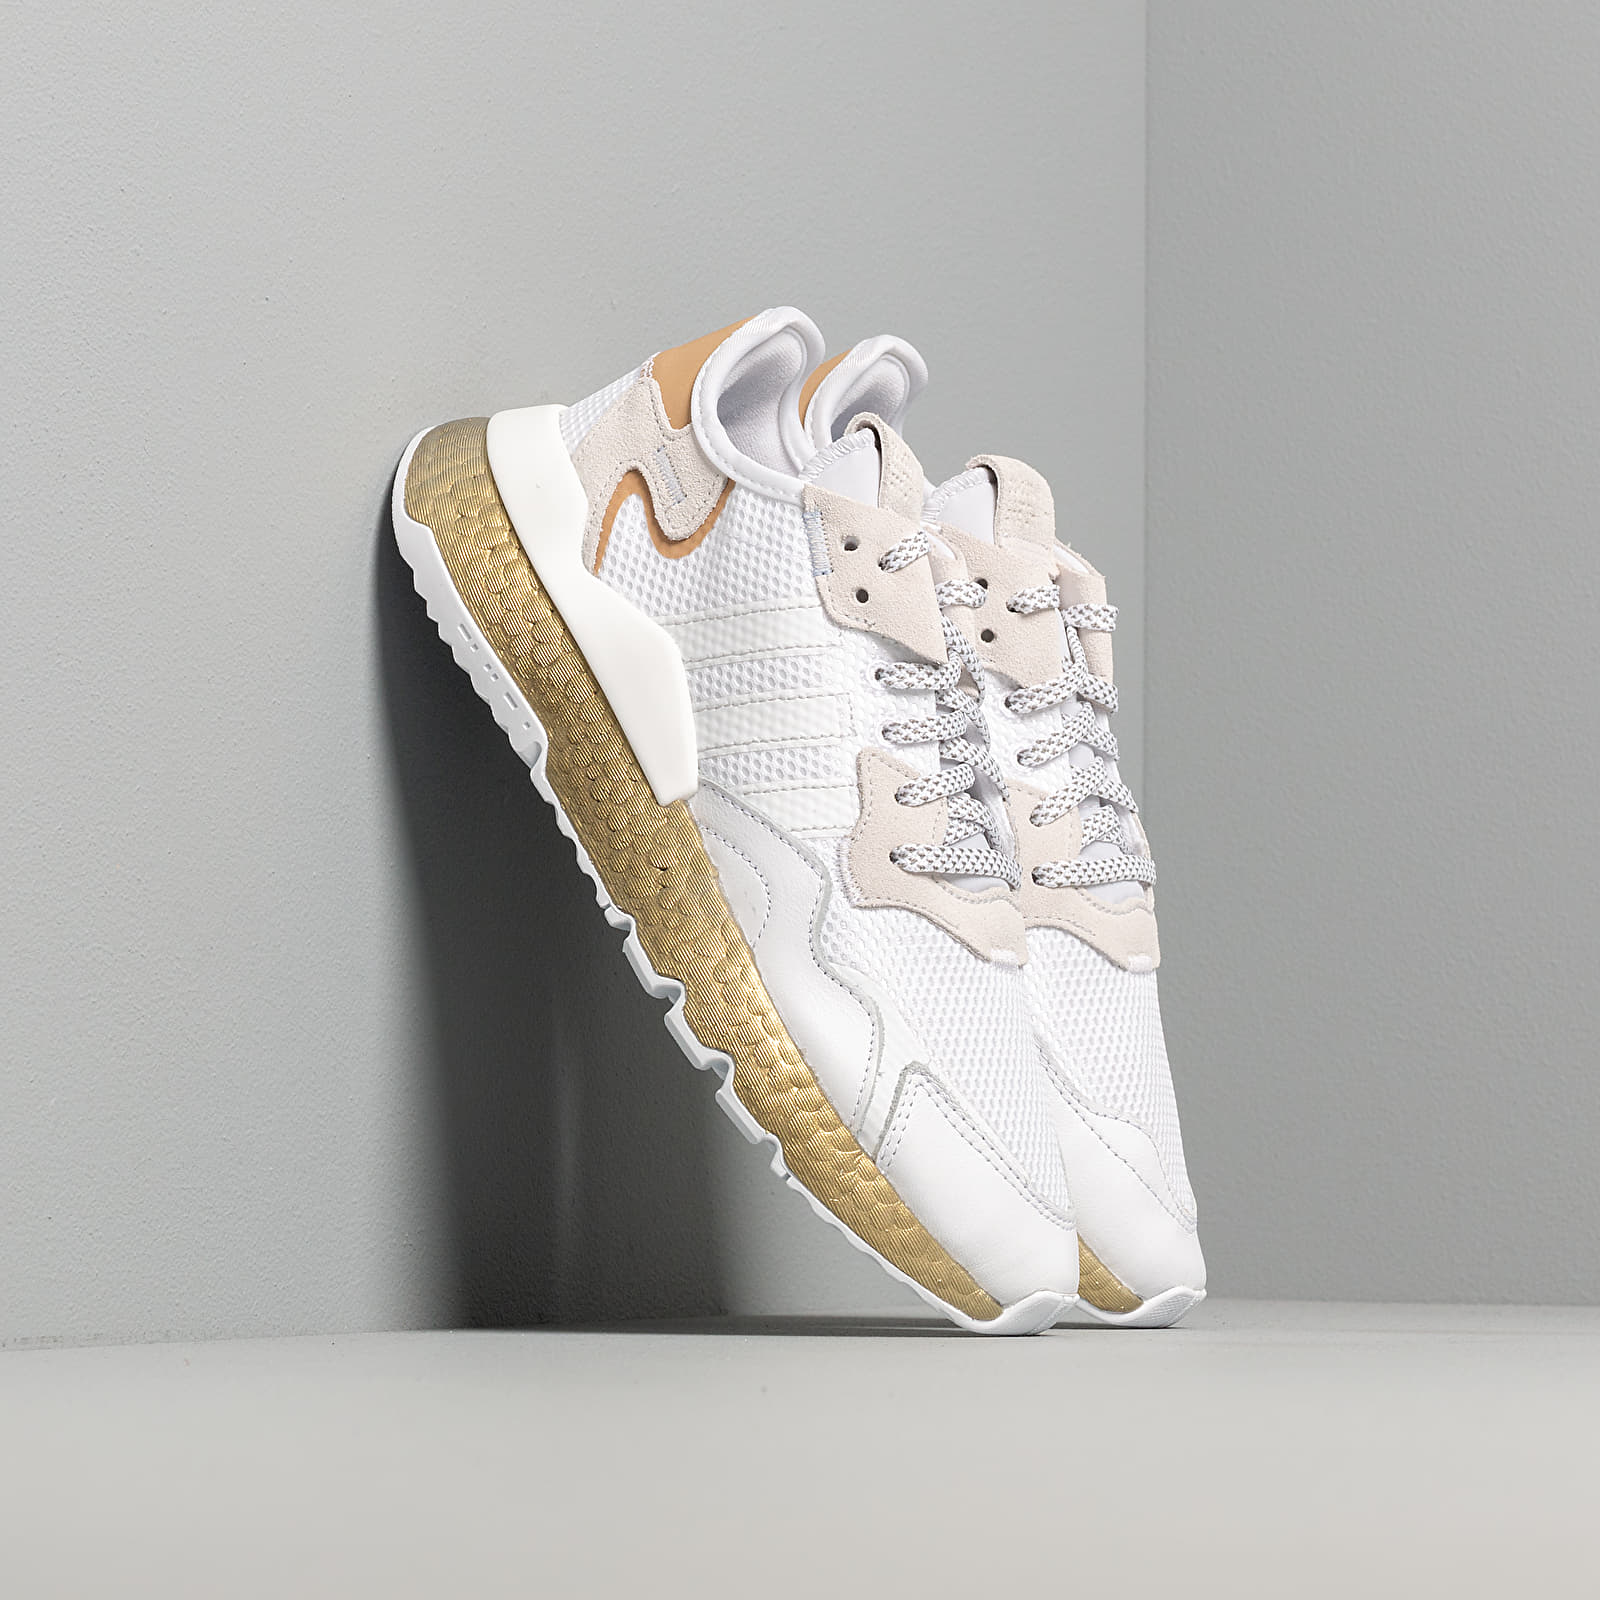 Women's shoes adidas Nite Jogger W Ftw White/ Periwinkle/ Gold Metalic